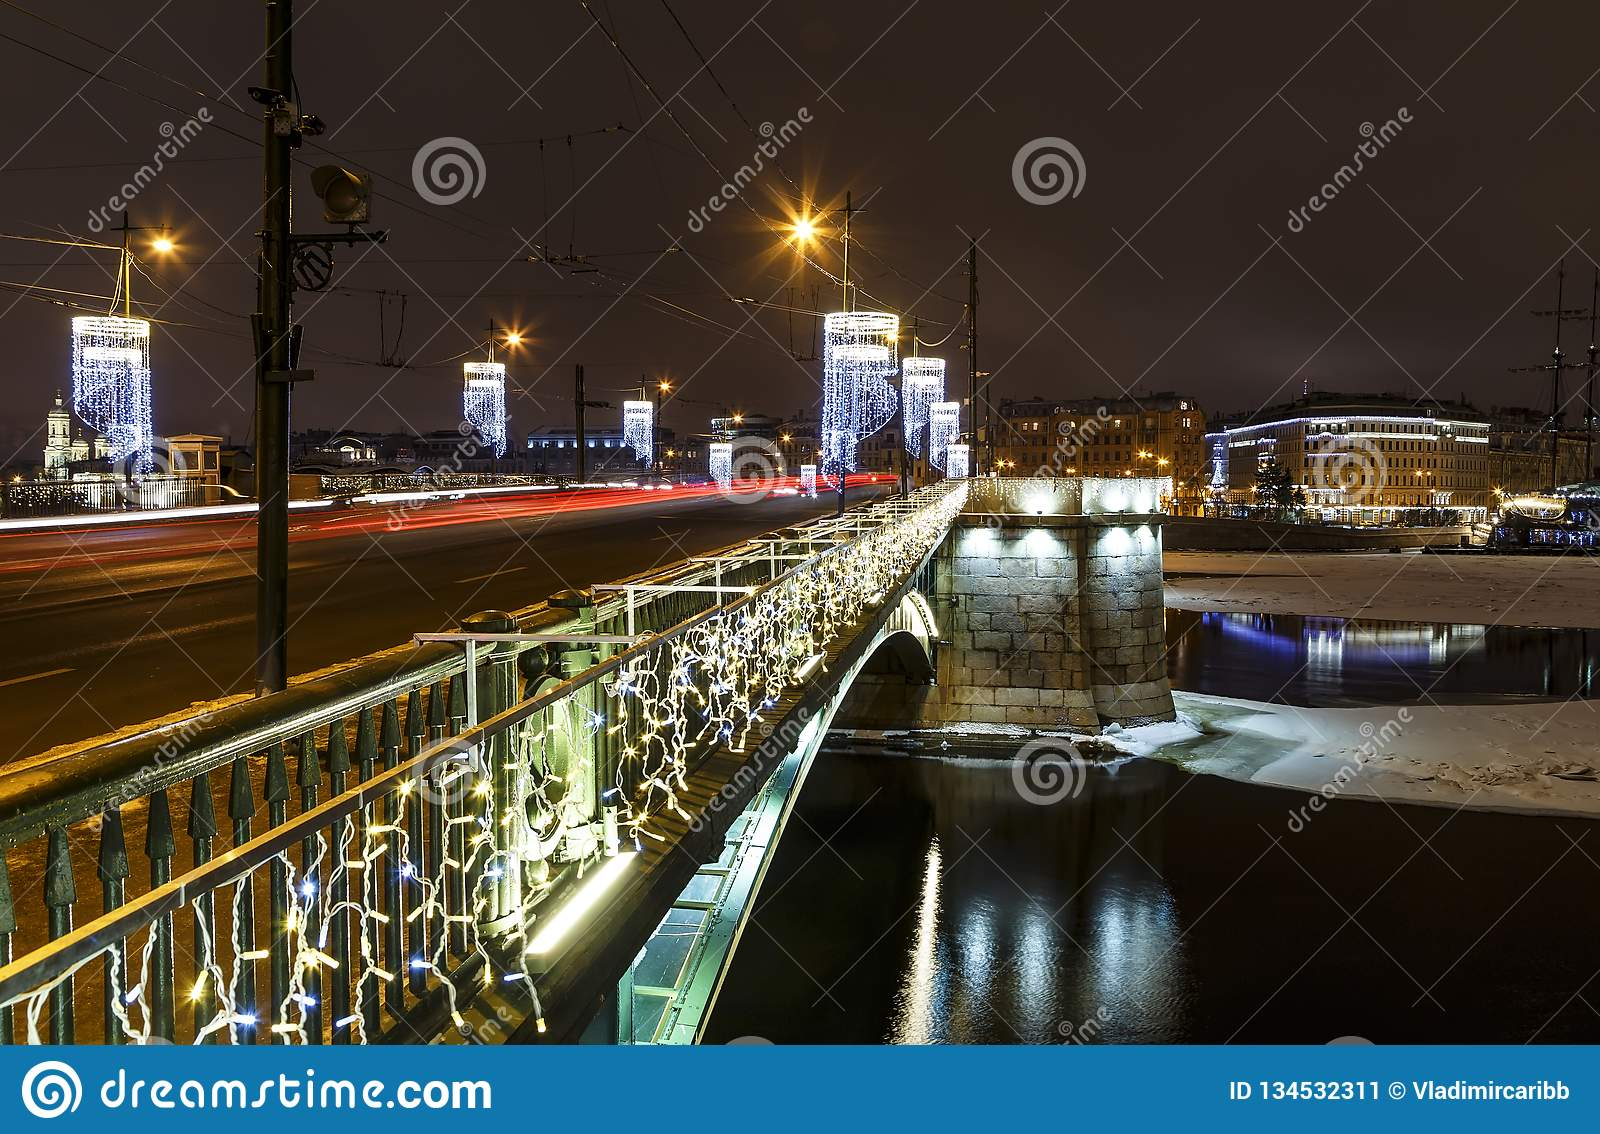 Neon blue illumination of the bridge across Neva river with water and reflection in it at night, cars and tracers from the